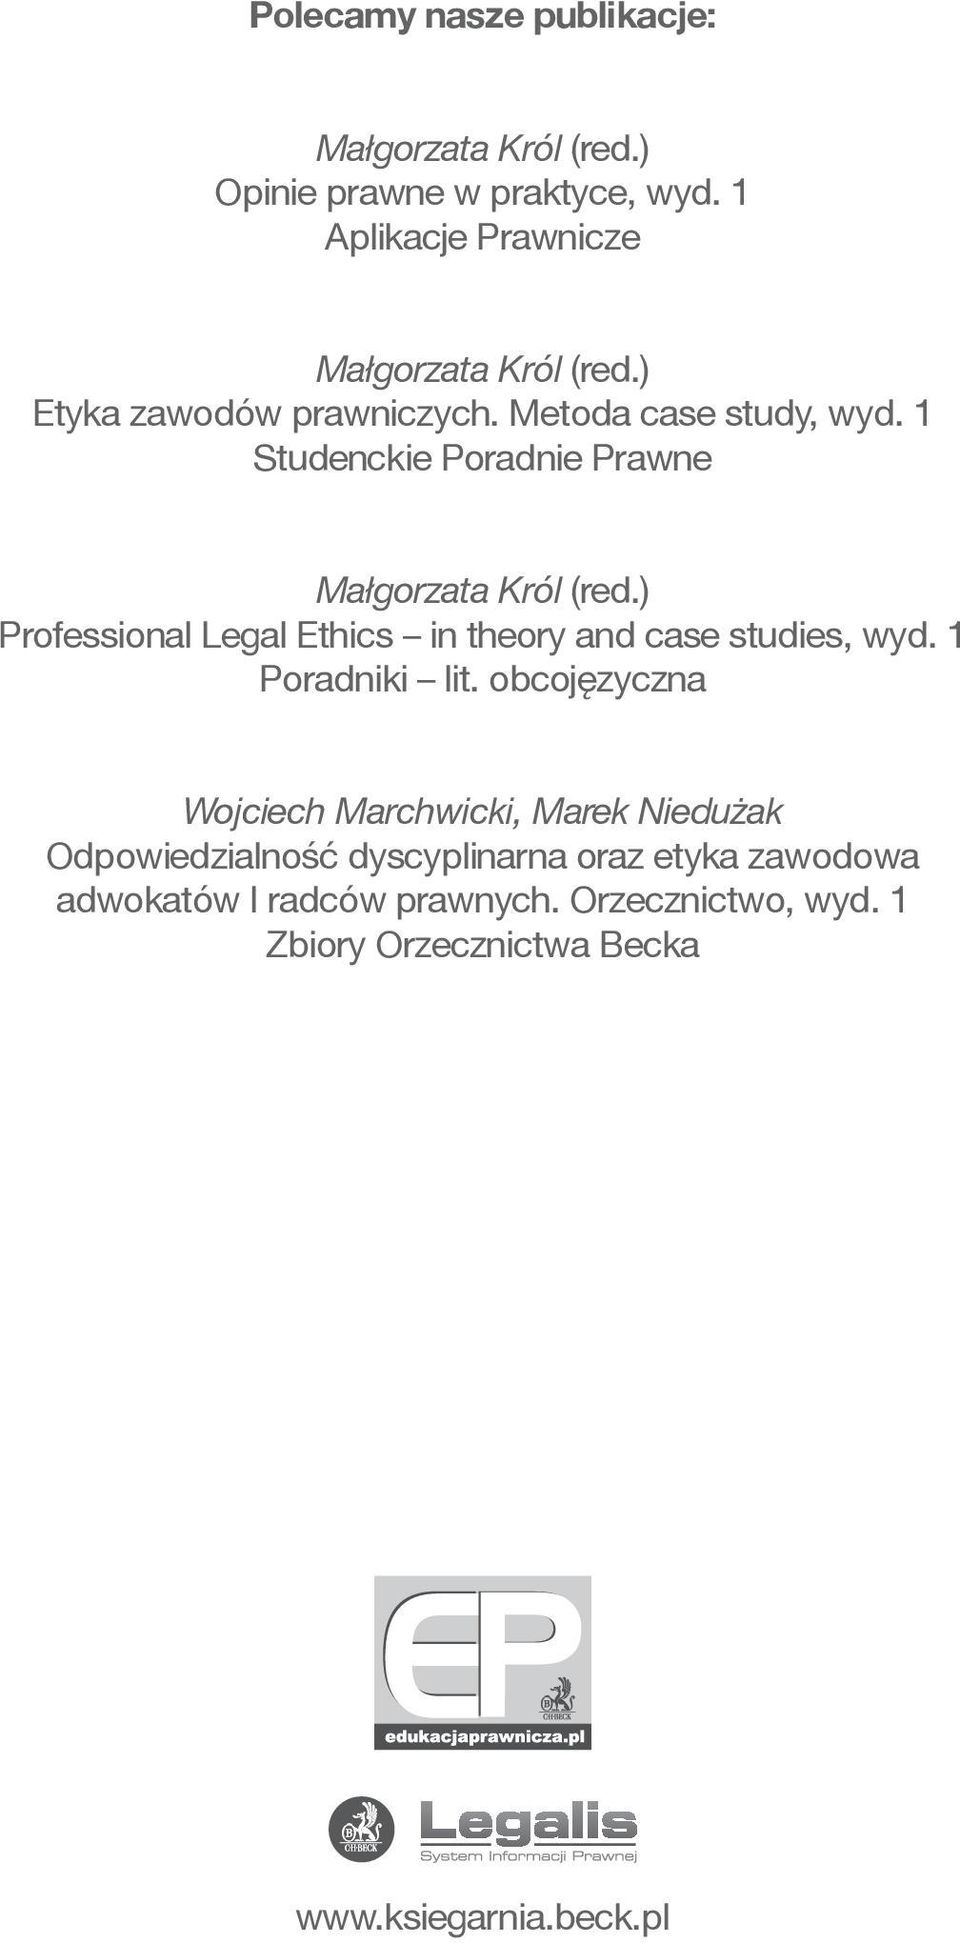 ) Professional Legal Ethics in theory and case studies, wyd. Poradniki lit.